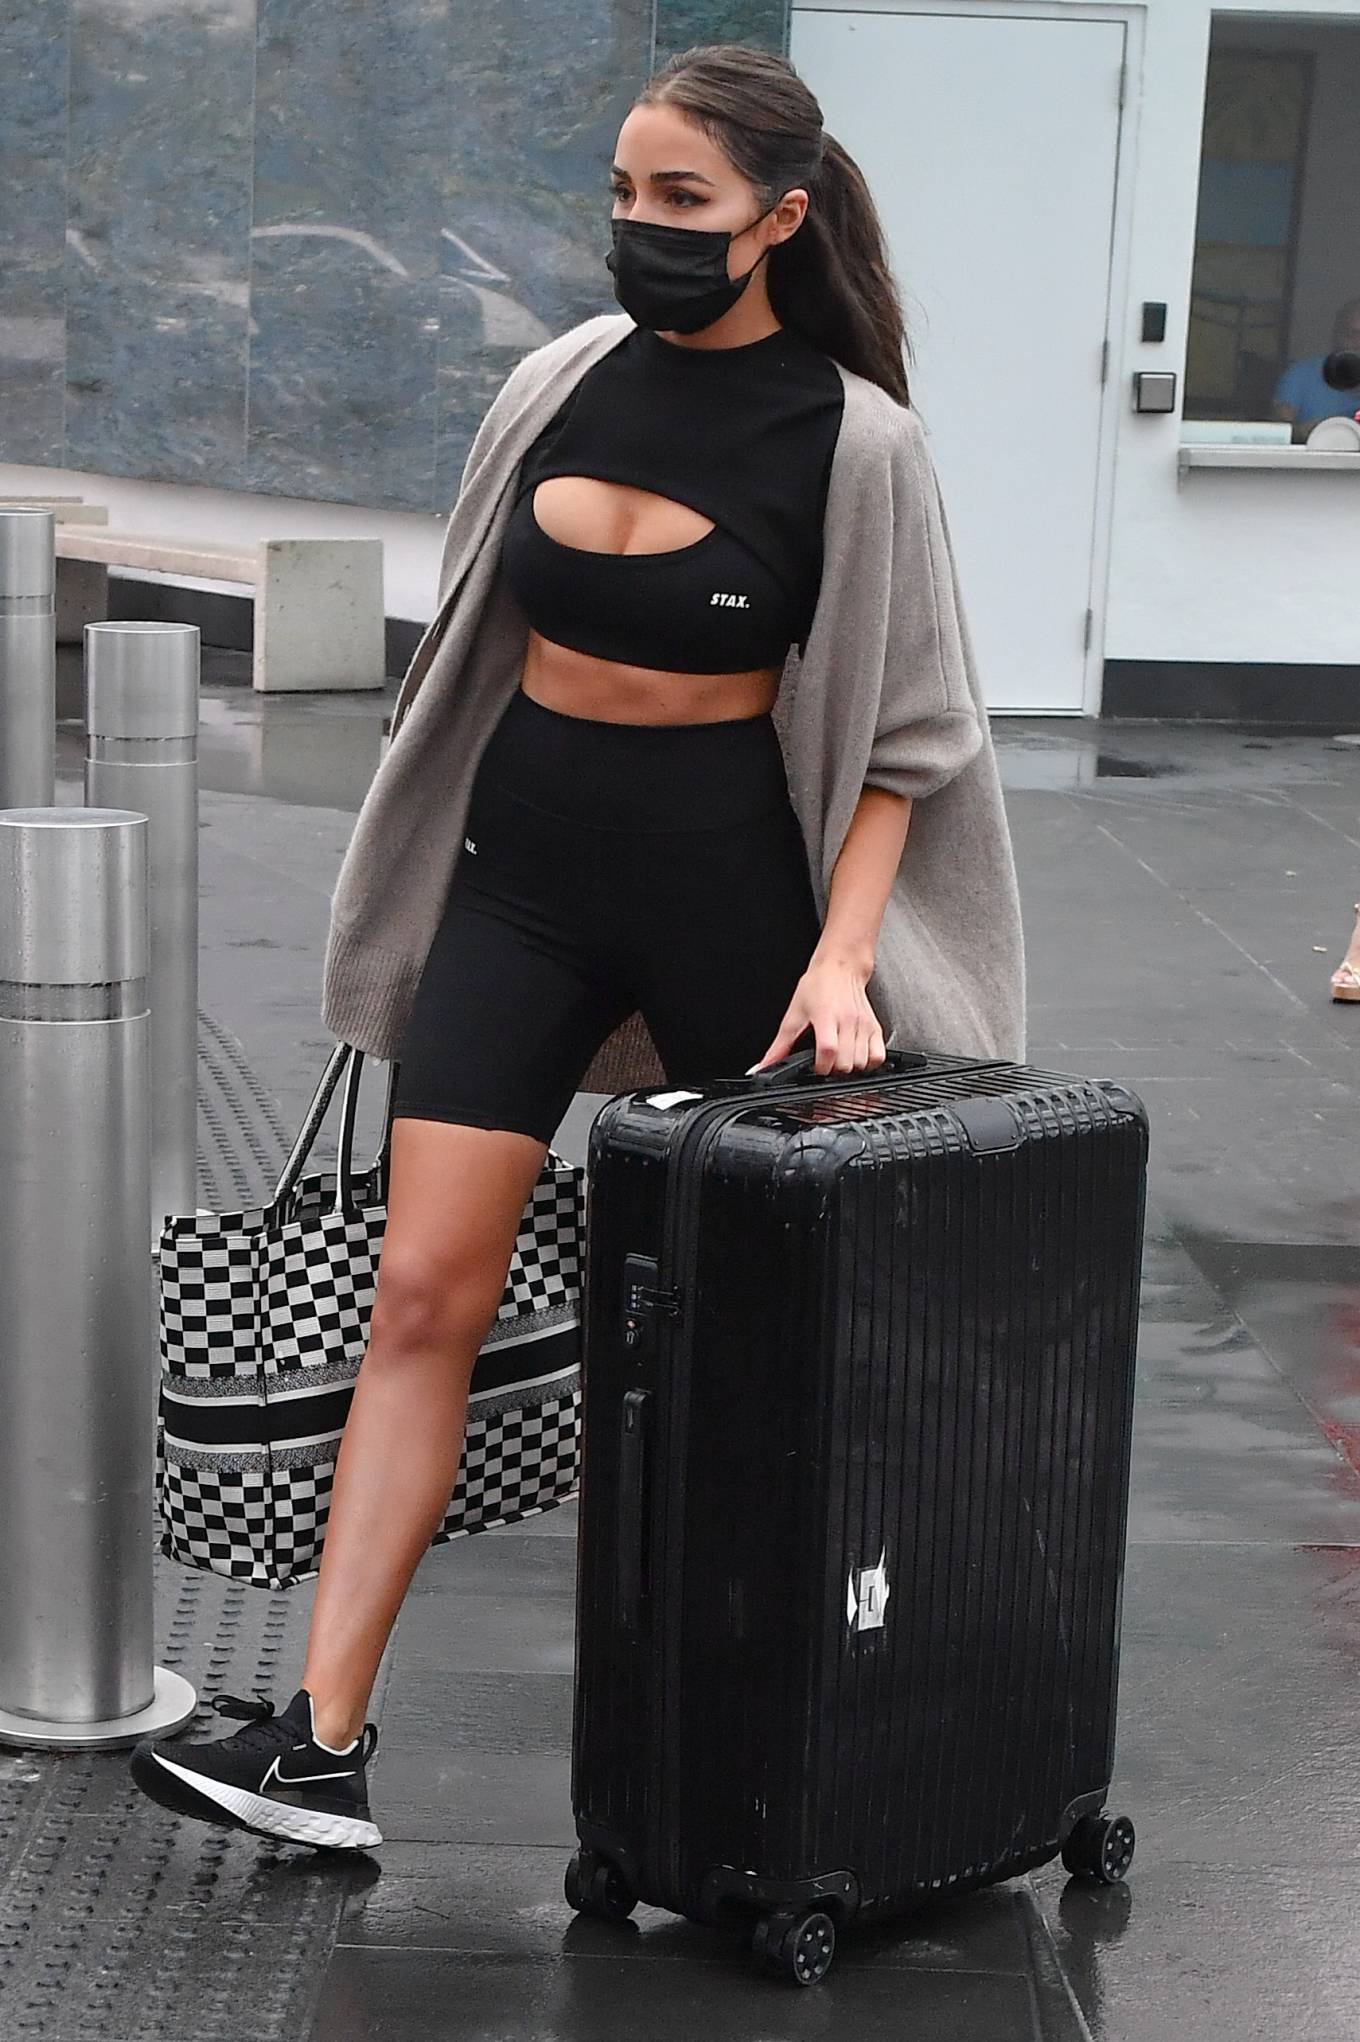 Olivia Culpo donning black Nike lace-up sneakers